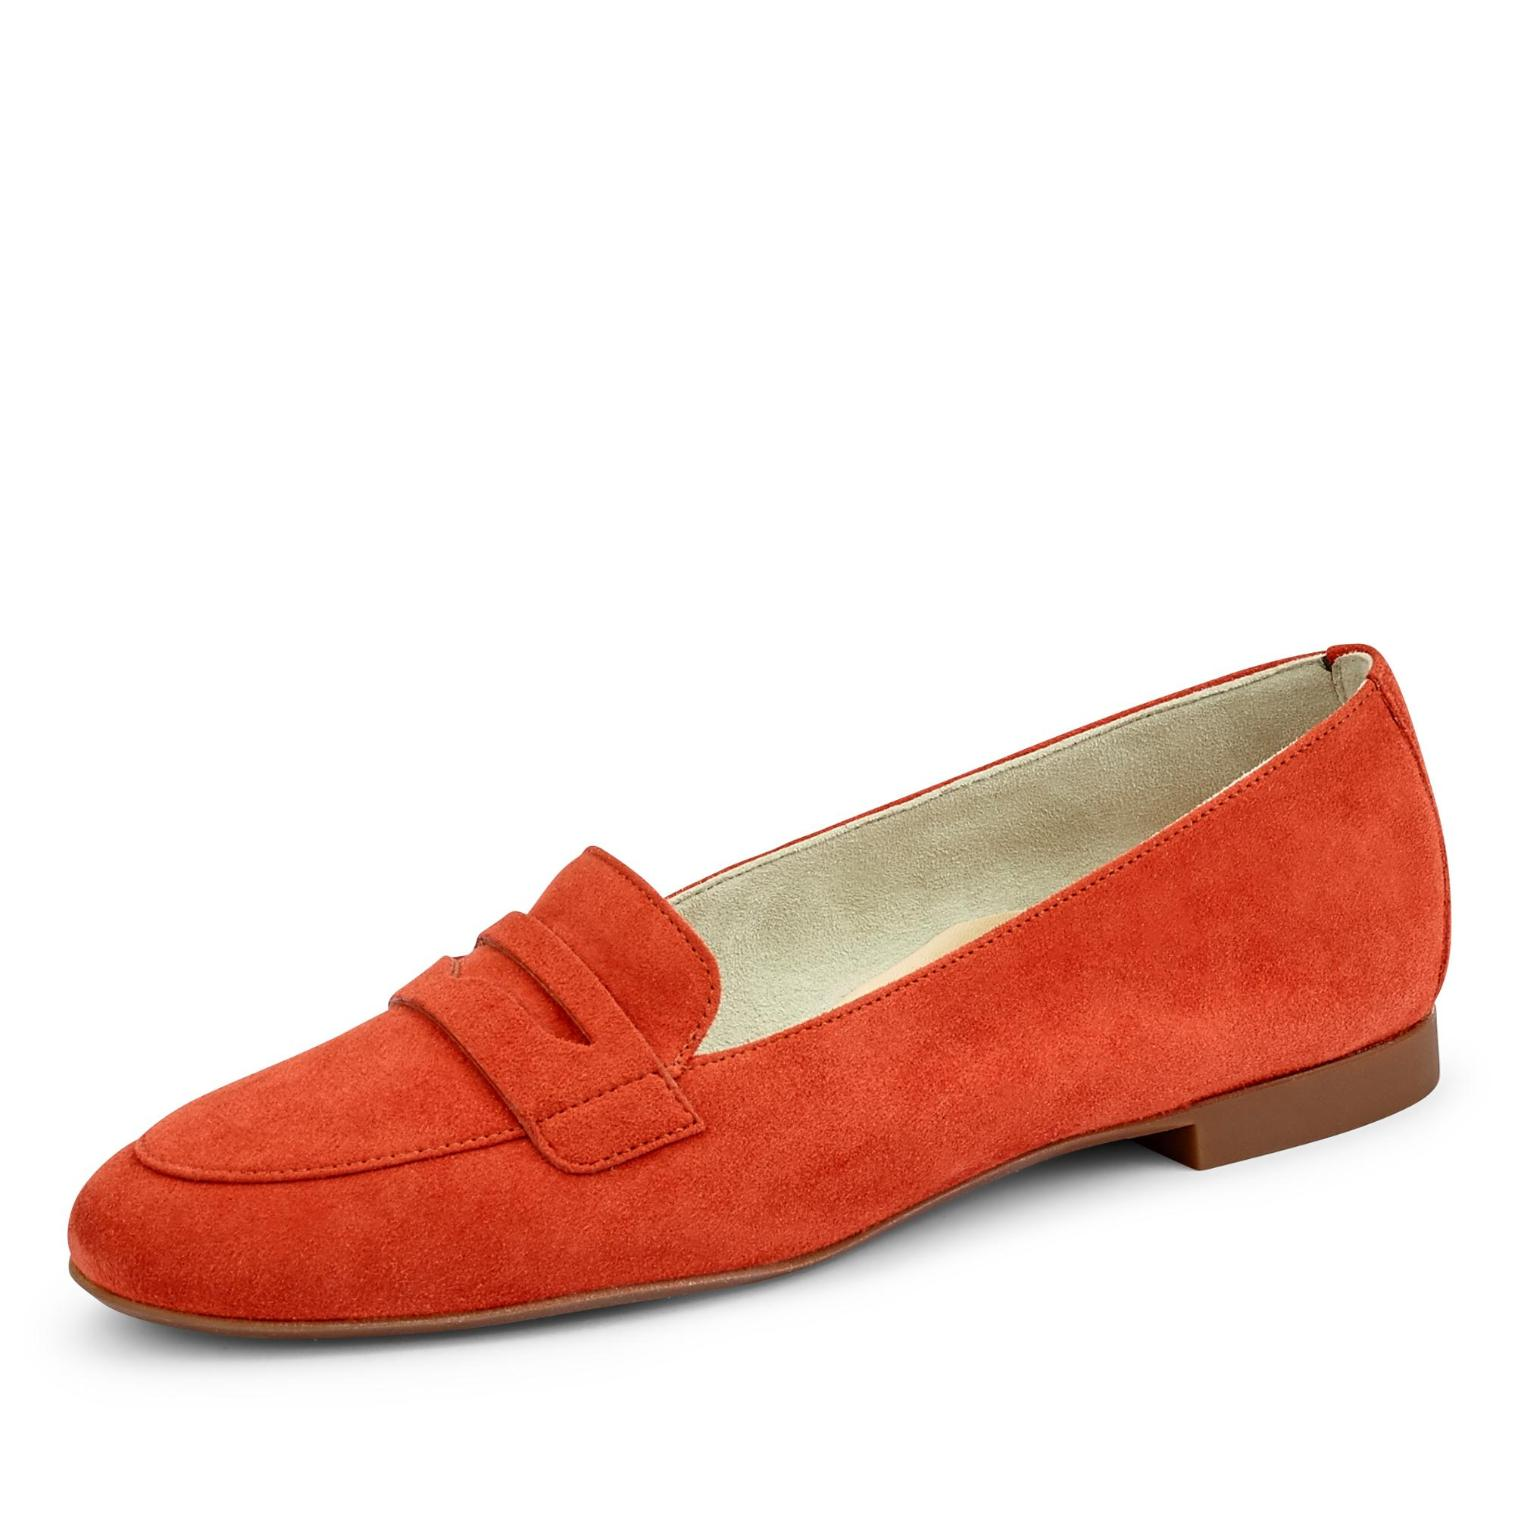 paul green -  Slipper - Damen - orange